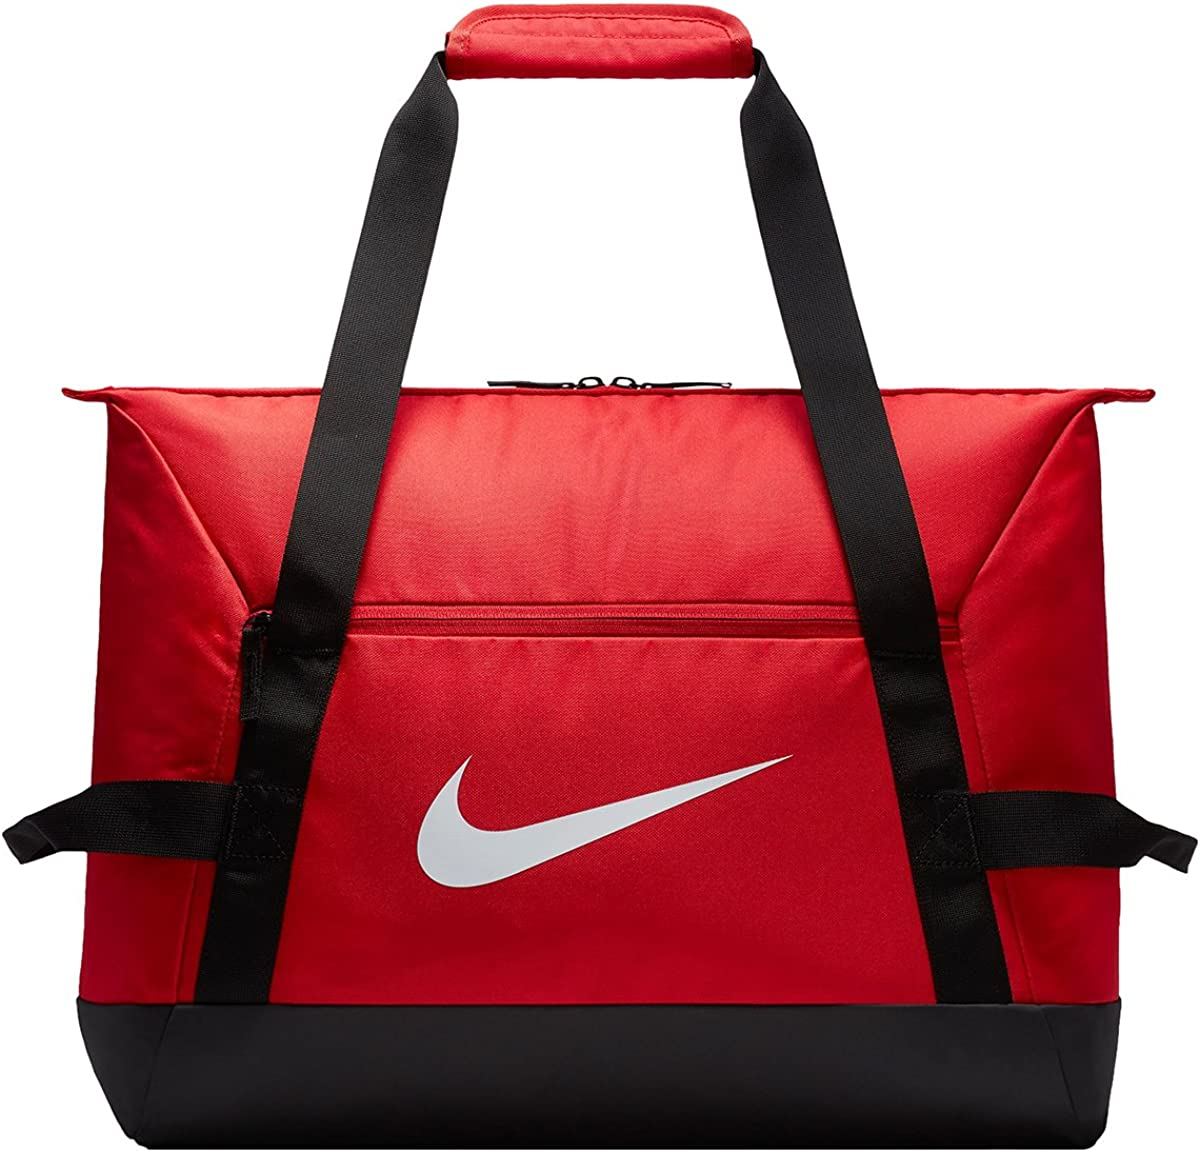 Nike Nk Acdmy Team S Duff Gym Duffel Bag Unisex Adulto